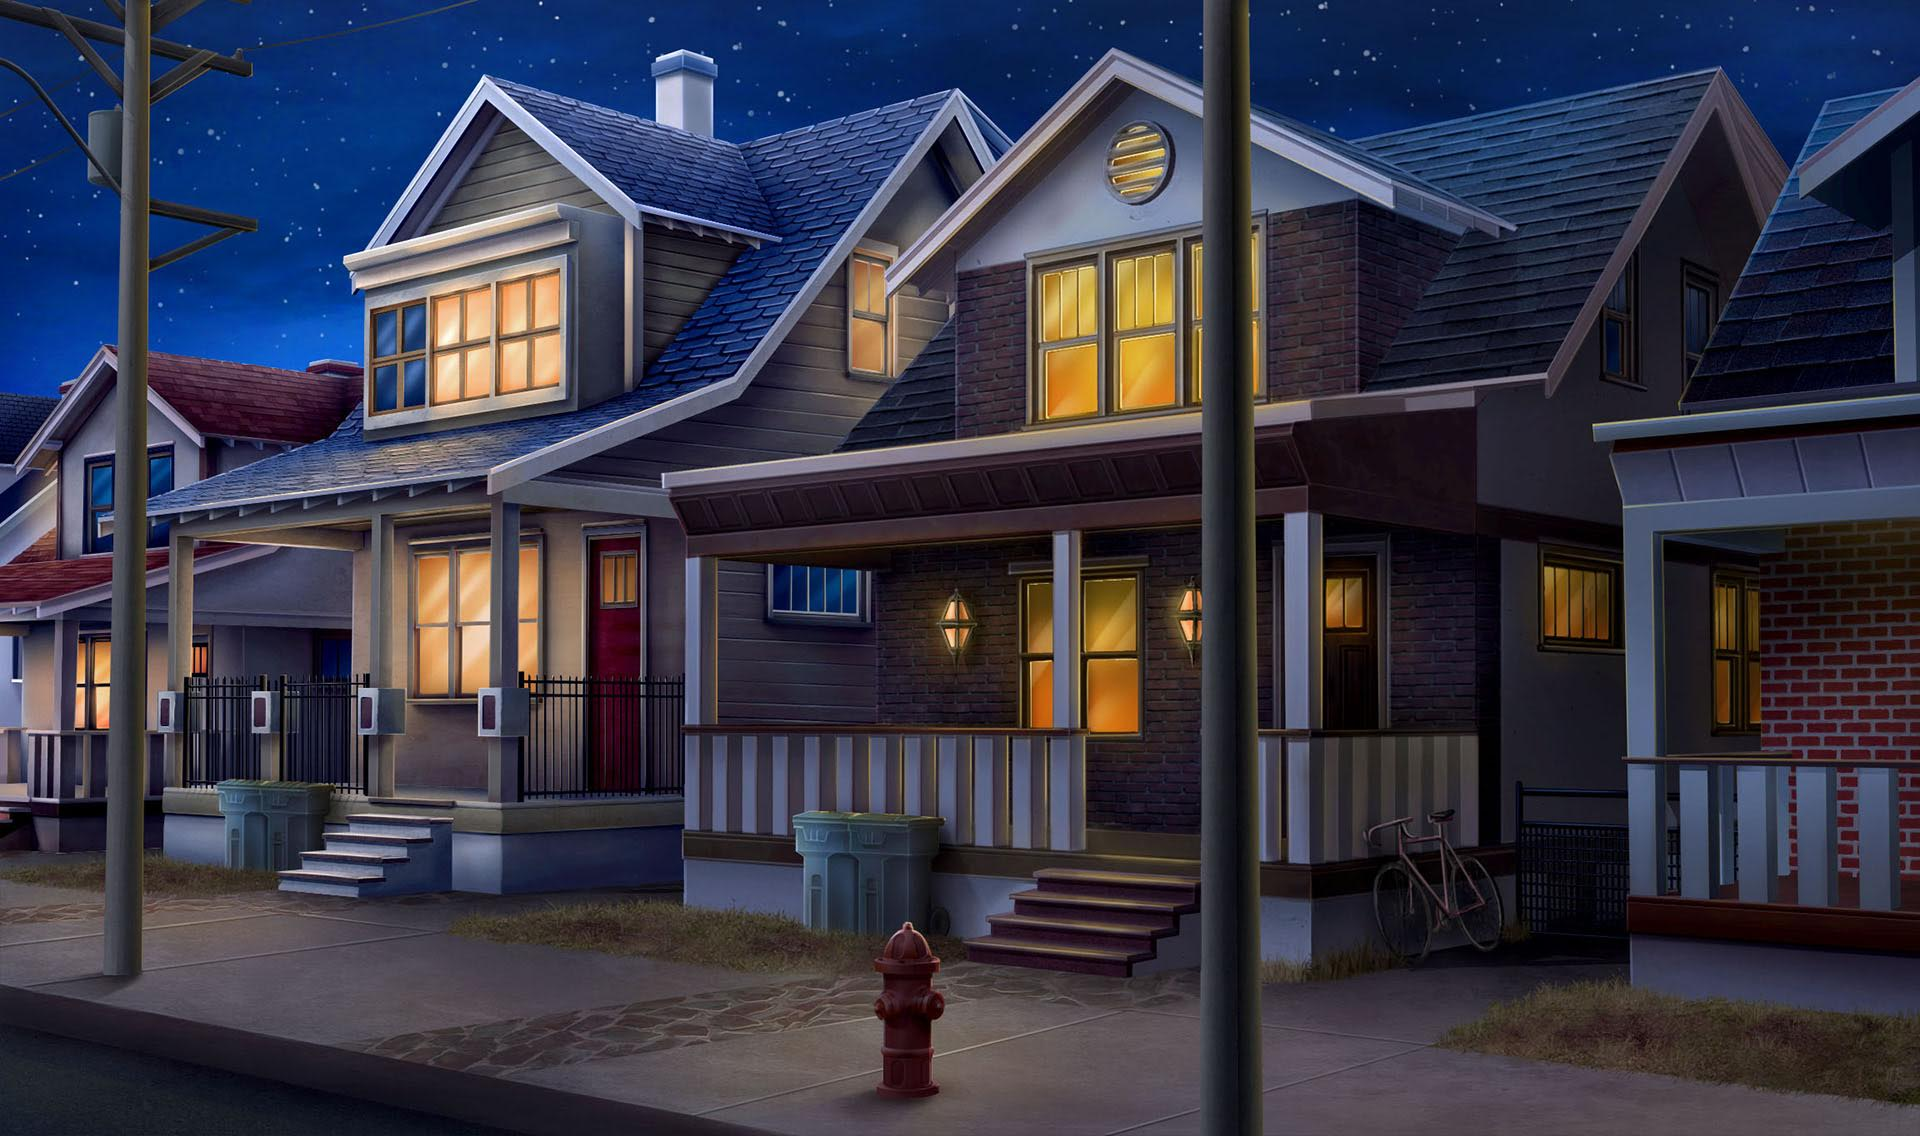 1000 Images About Episode On Pinterest House And Night